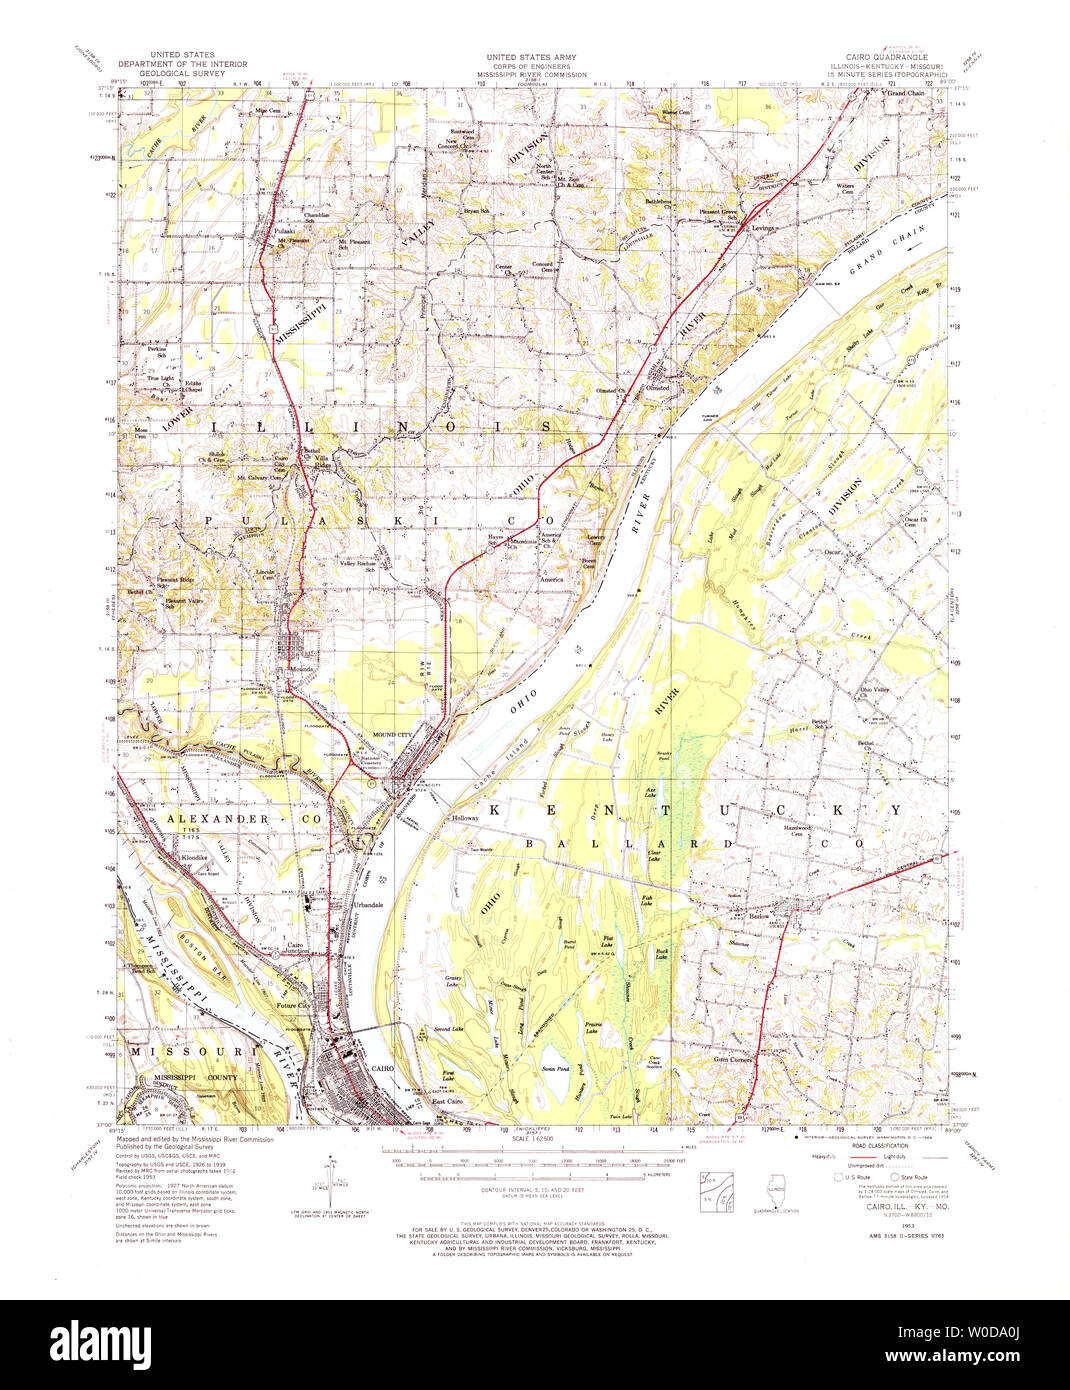 USGS TOPO Map Illinois IL Cairo 309283 1953 62500 Restoration Stock Map Of Eastern Kentucky Near Cairo Il on map of carol stream il, map of woodford county il, map of calumet city il, map of jerseyville il, map of warsaw il, map of carmi il, map of farmer city il, map of tamms il, map of san jose il, map of ohio river il, map of stark county il, map of mississippi river il, map of granite city il, map of new albany il, map of arenzville il, map of iroquois county il, map of palos hills il, map of nauvoo il, map of west frankfort il, map of horseshoe lake il,